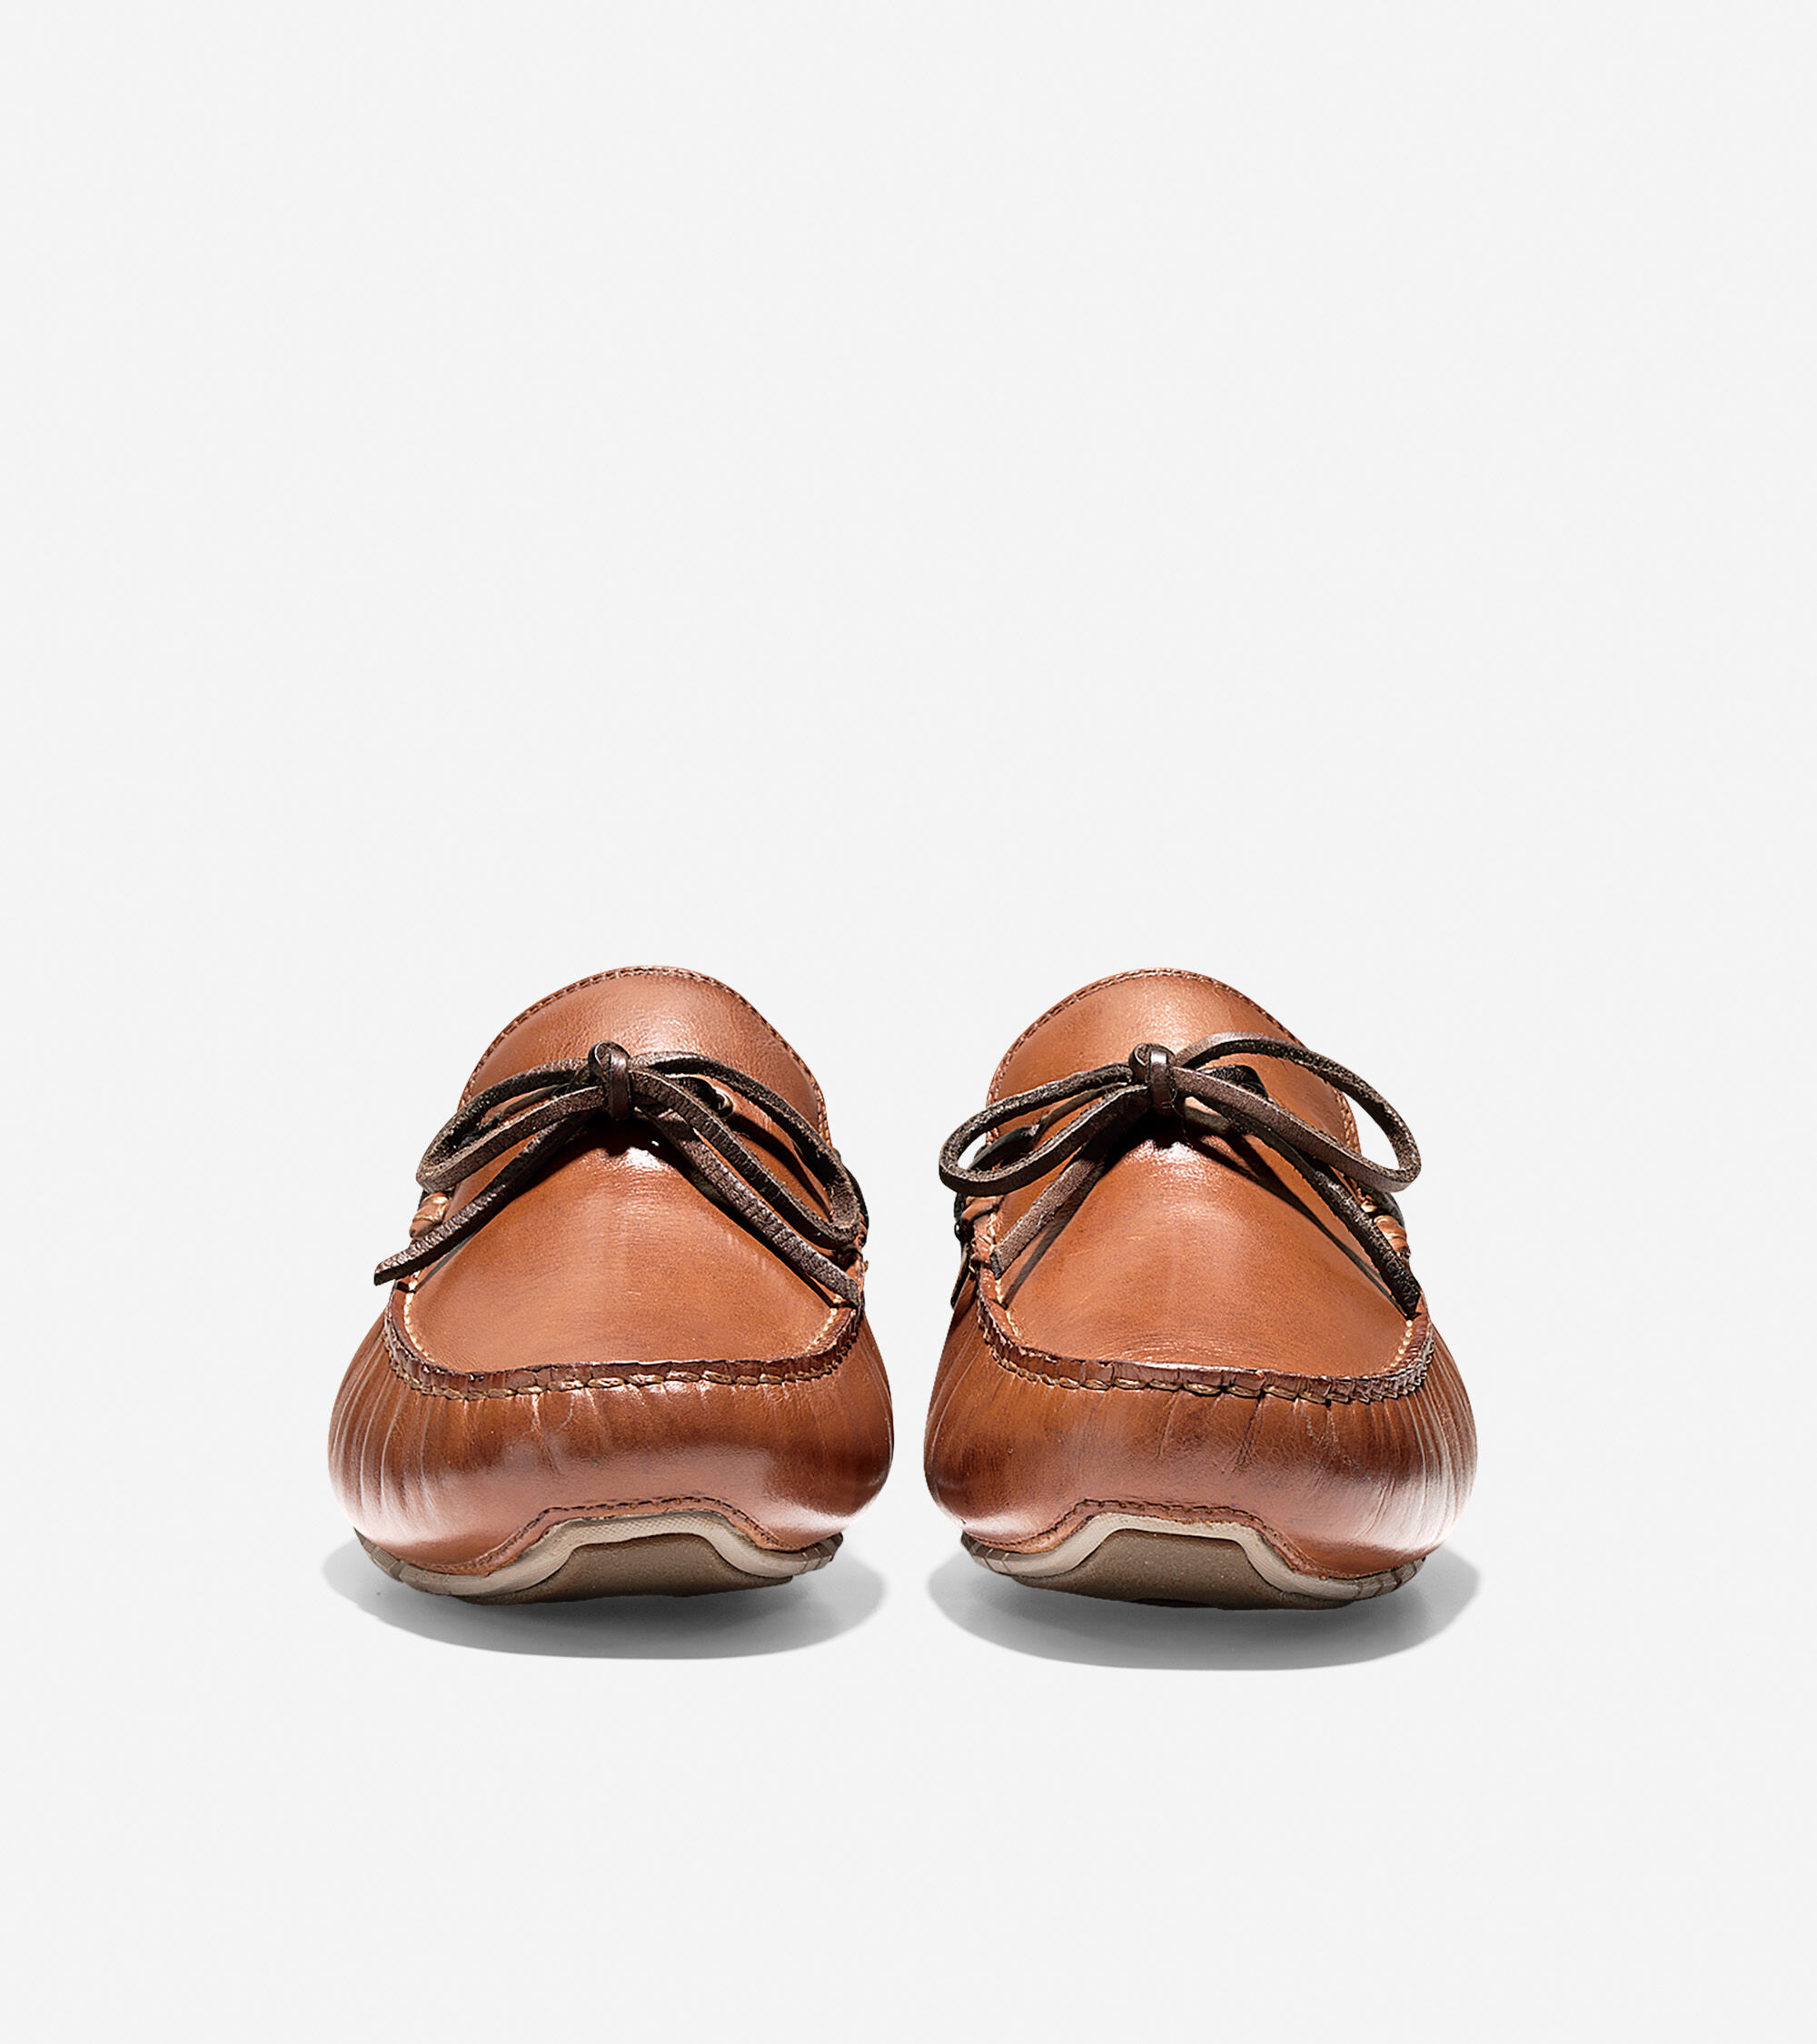 Mens Zerogrand Drivers In Papaya Leather Cole Haan D Island Shoes Casual Slip On England Suede Brown Zergrand Driver